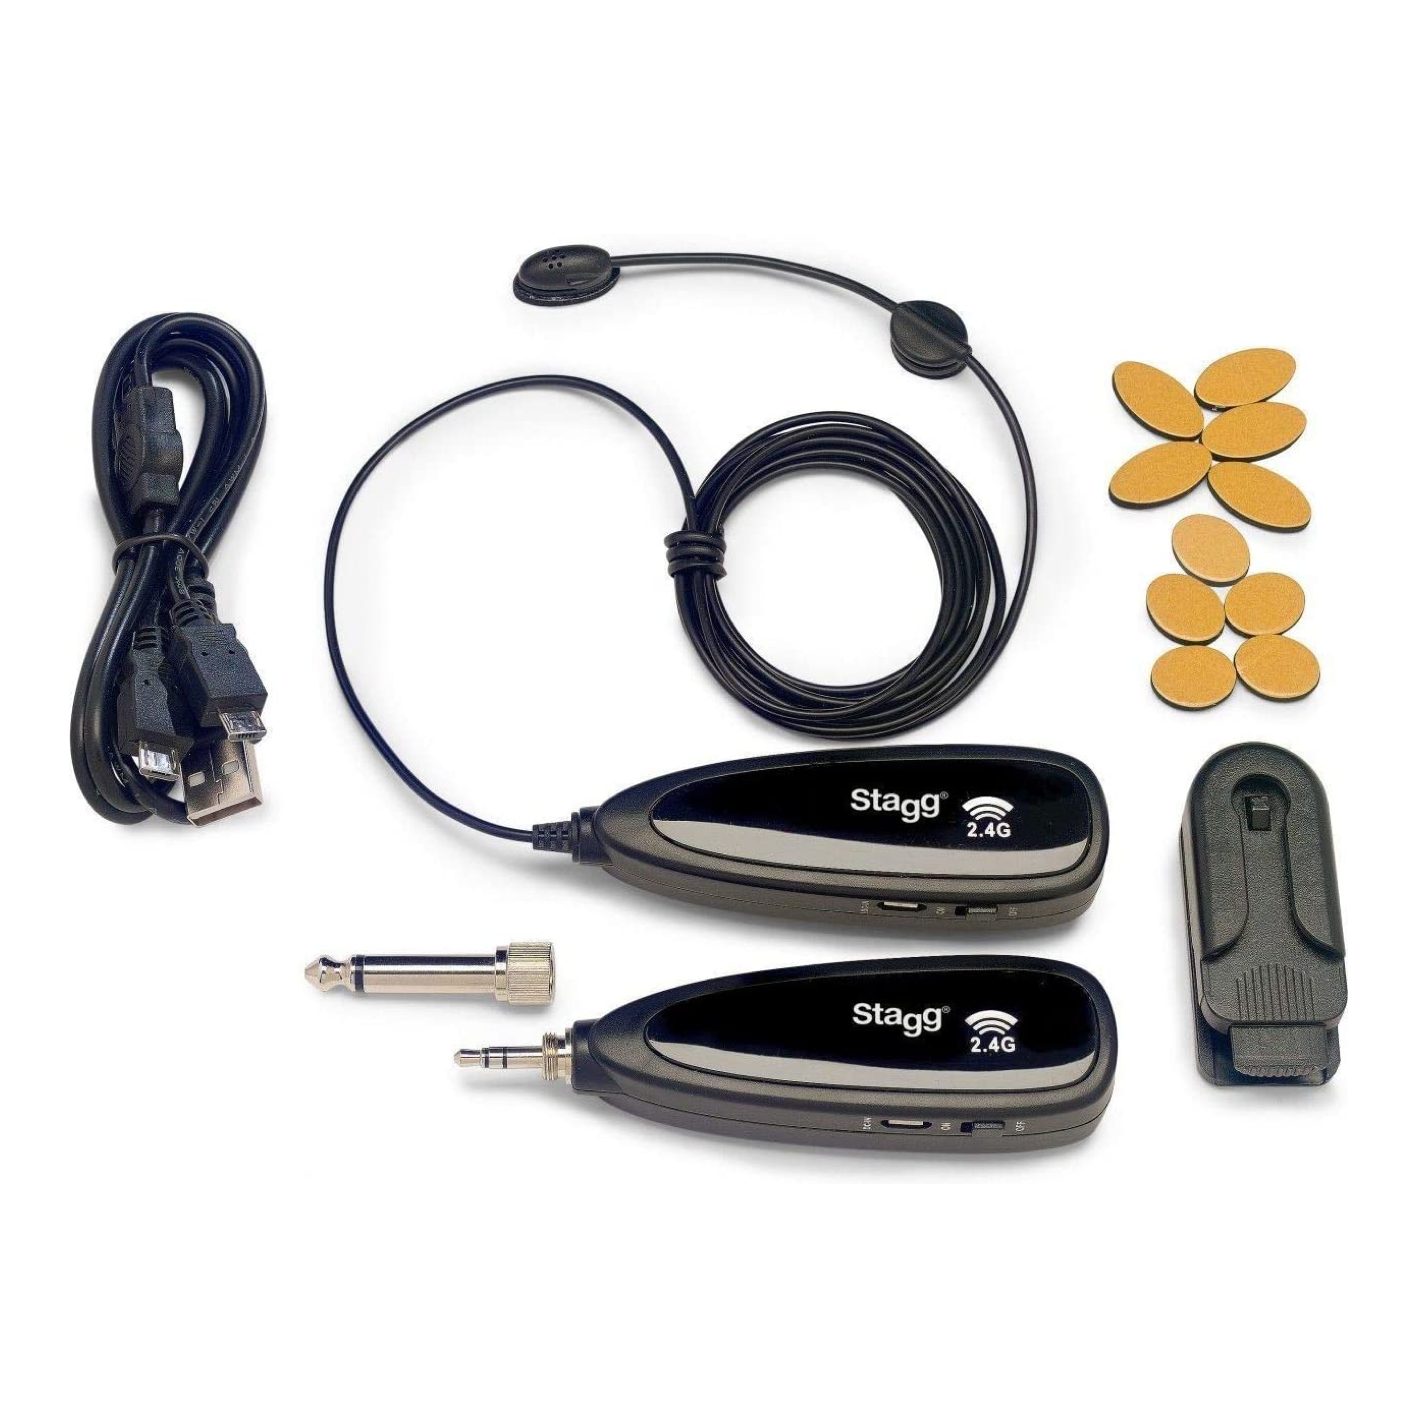 Stagg SUW10BC Wireless Surface Microphone